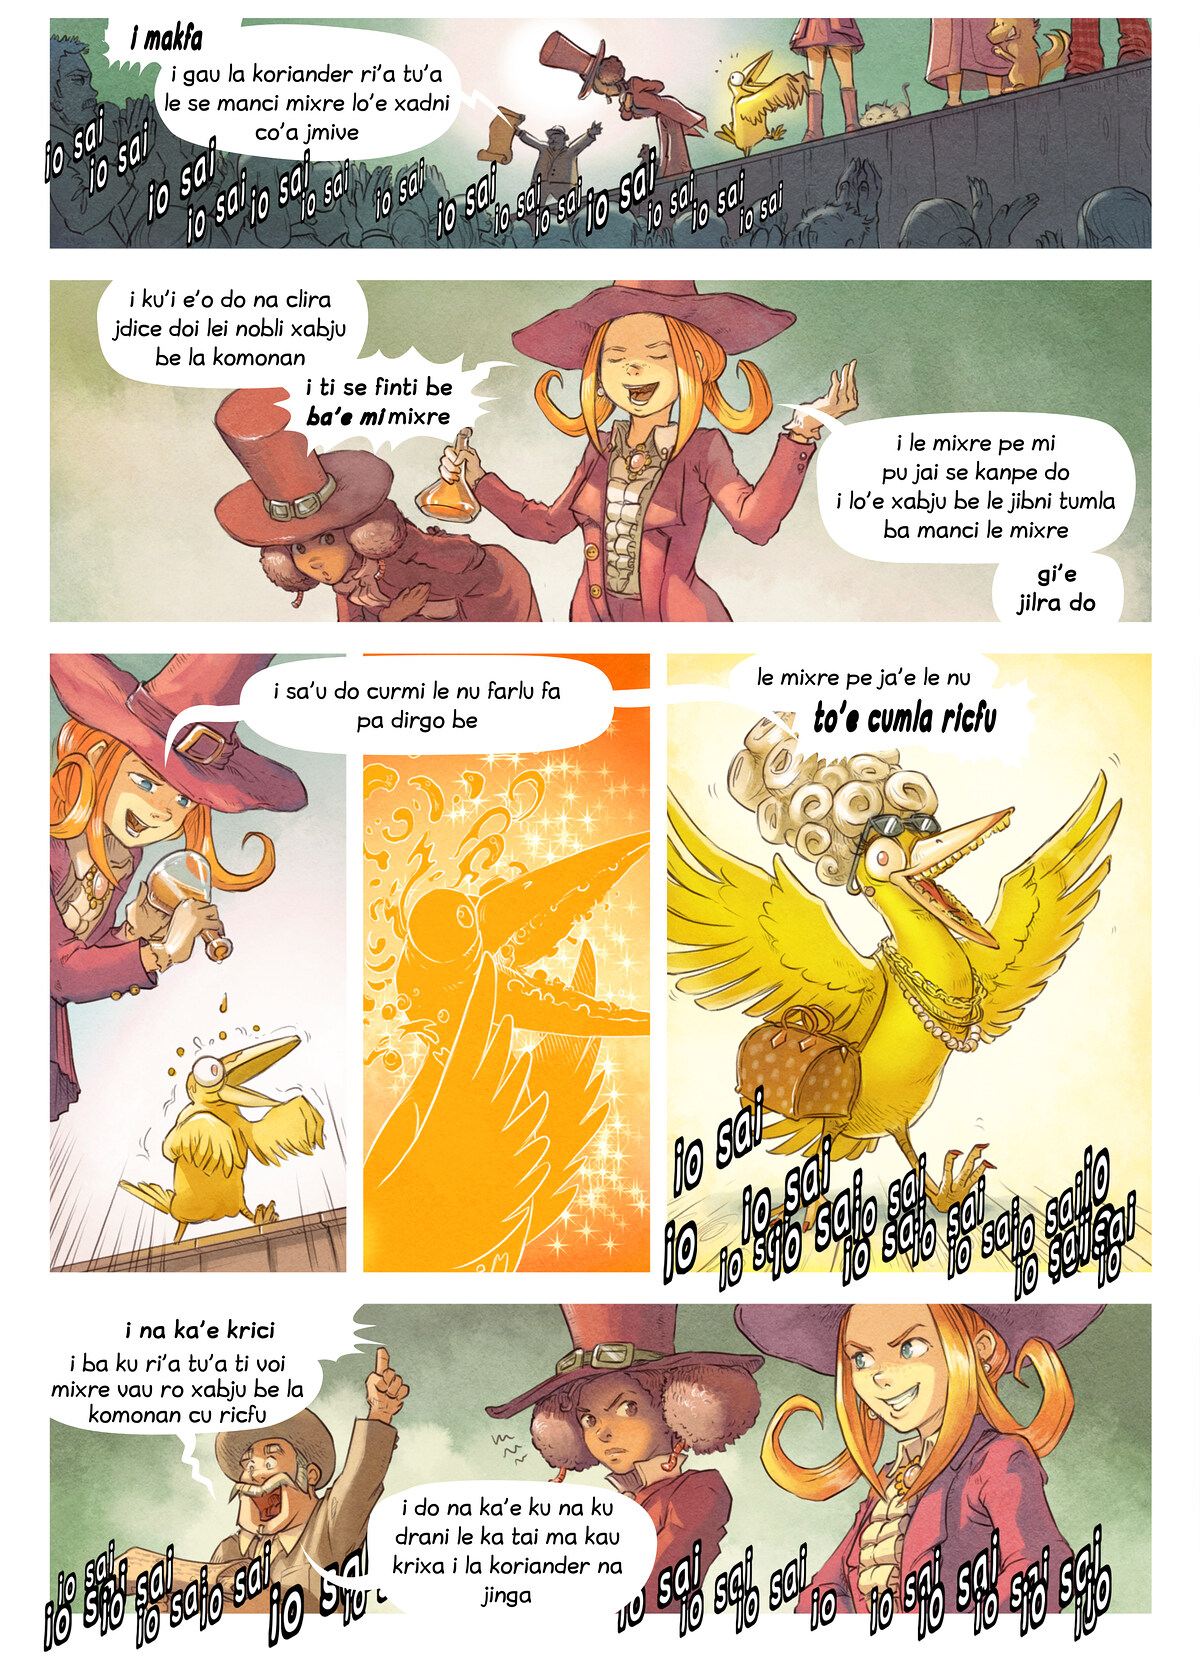 A webcomic page of Pepper&Carrot, pagbu 6 [jb], papri 5